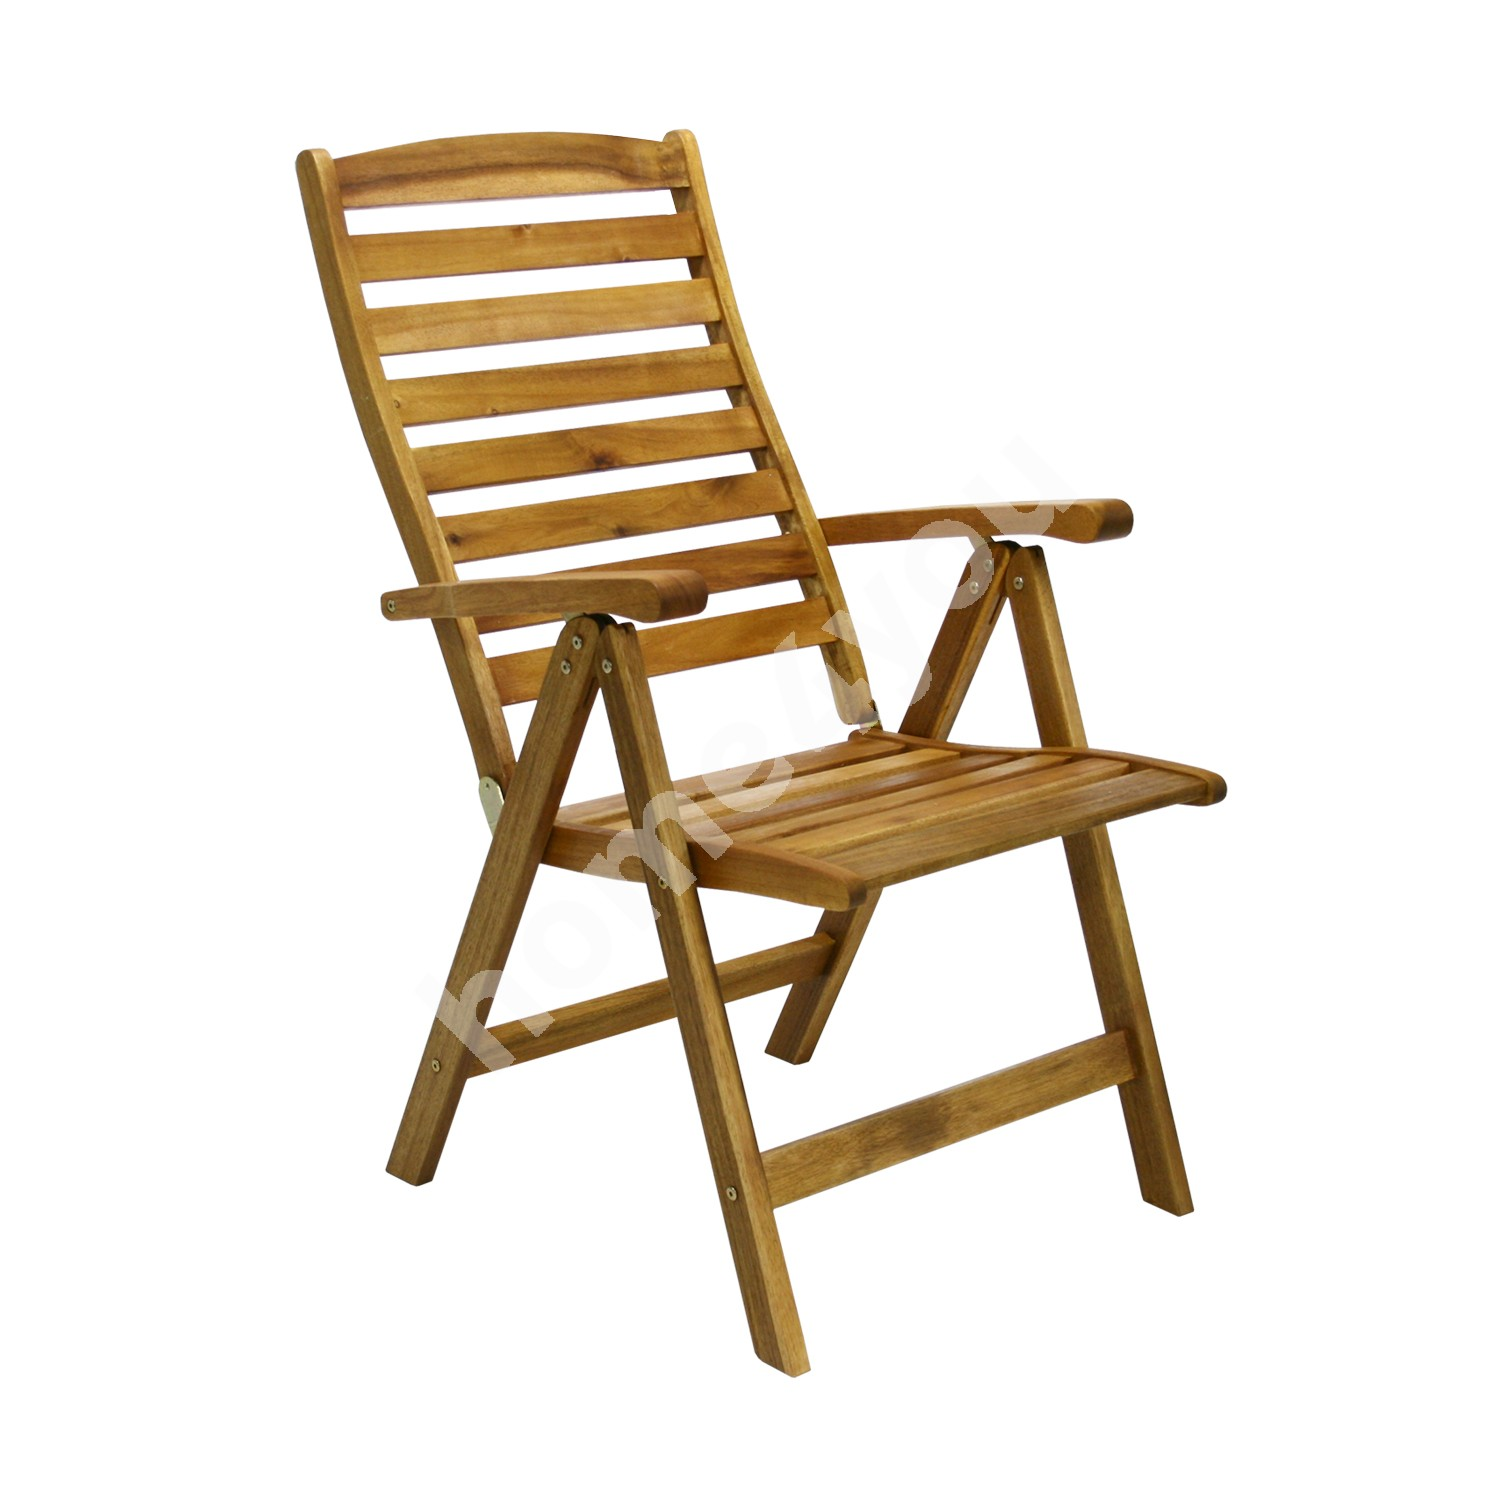 Chair FINLAY 62x66xH110cm, 5-position , wood: acacia, finish: oiled